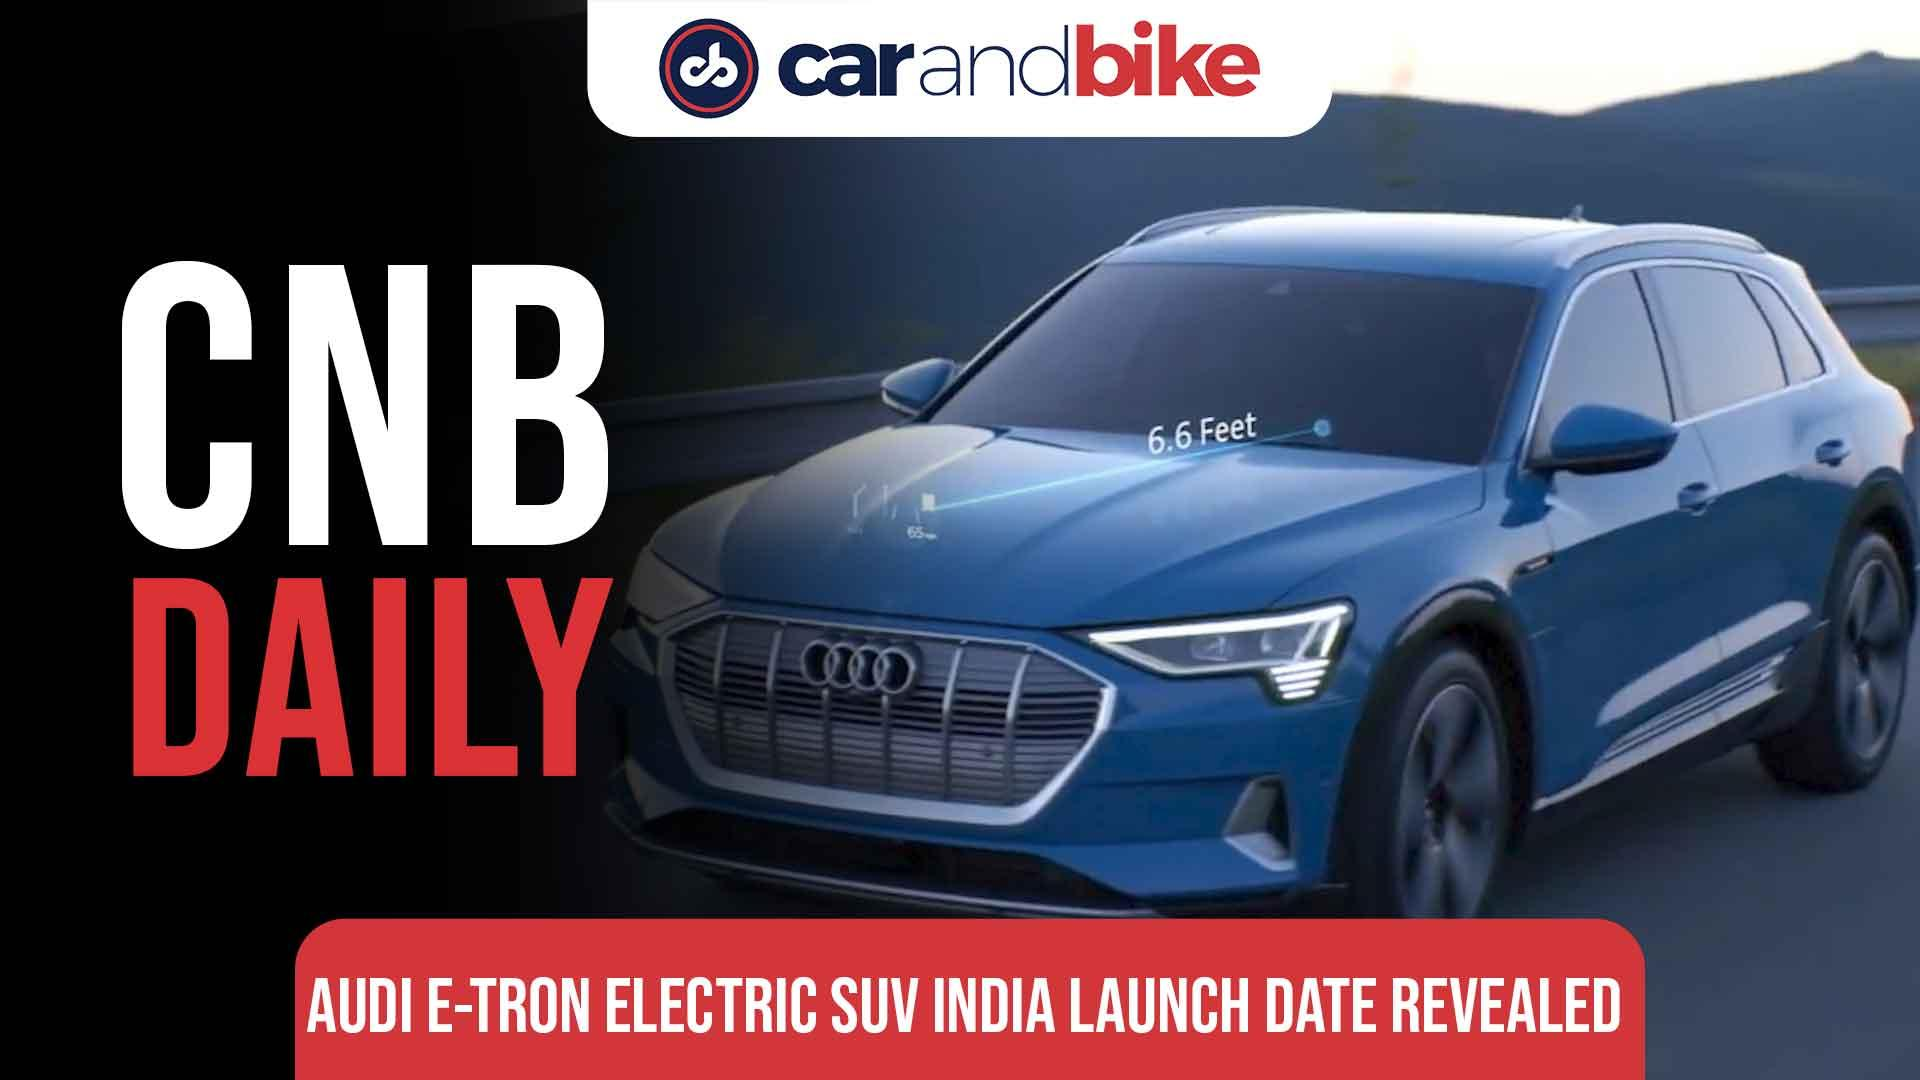 Audi E-Tron Electric SUV launch on July 22